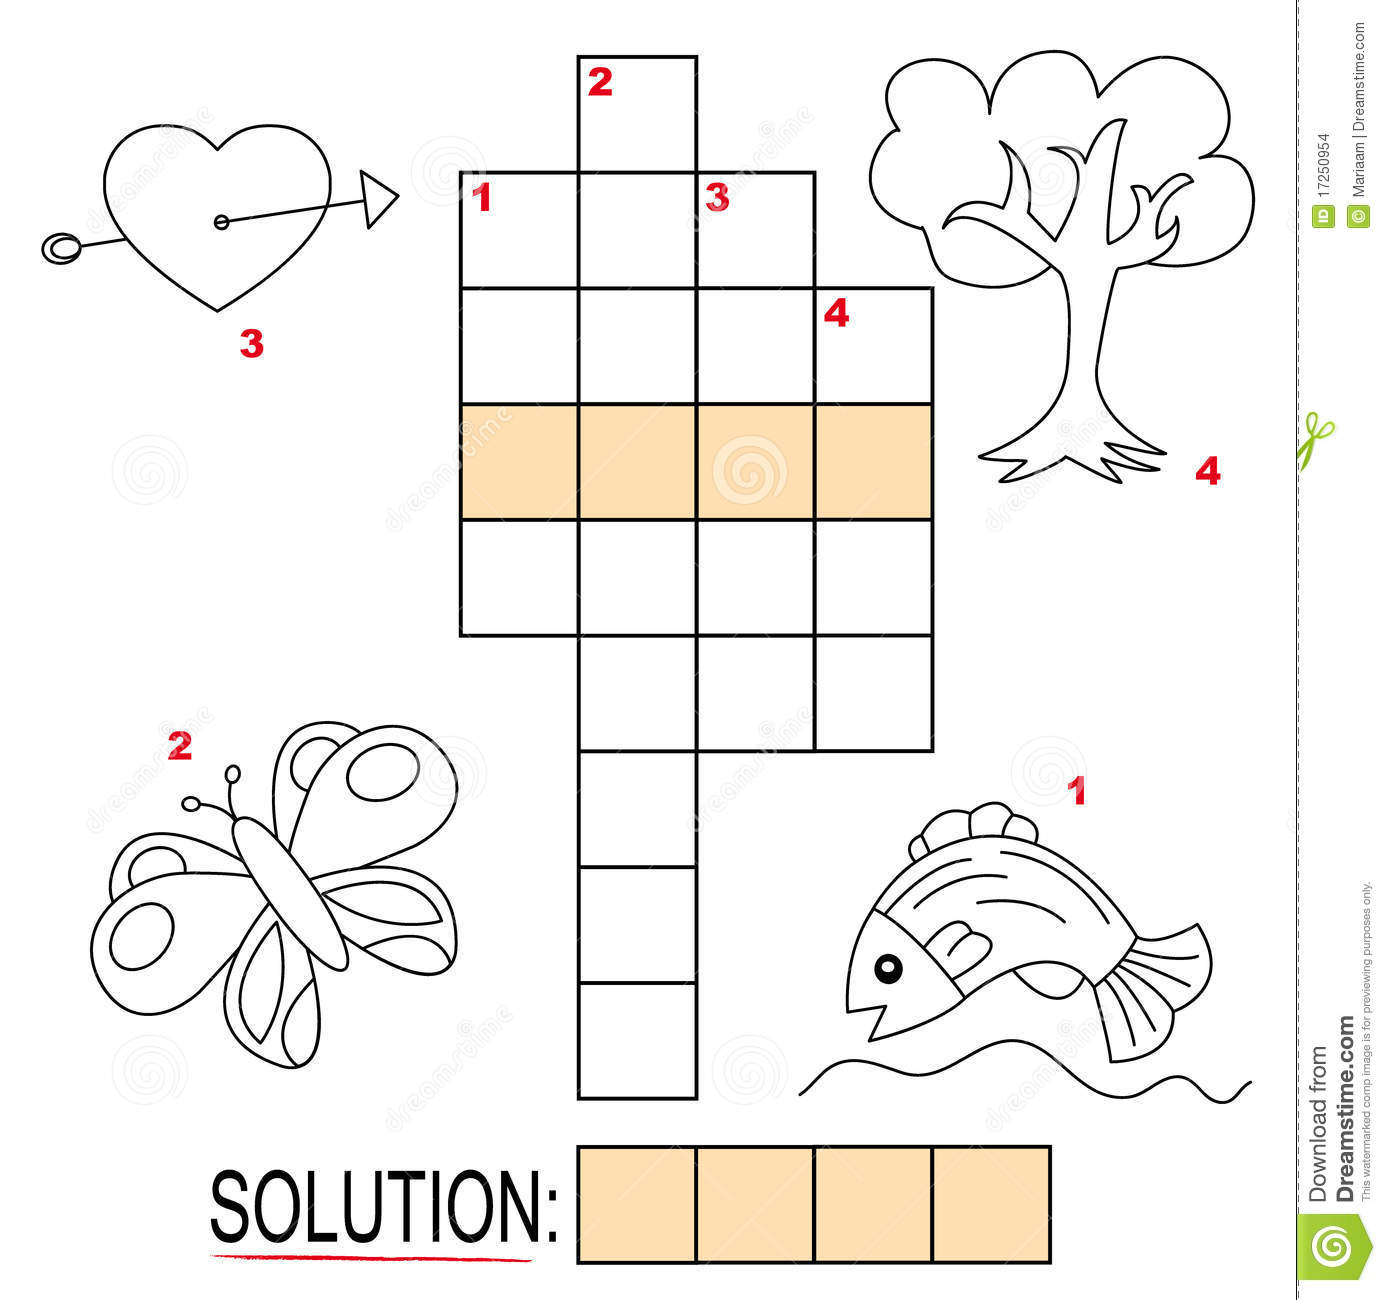 ... puzzles for kids printable puzzles for kids crossword puzzles for kids